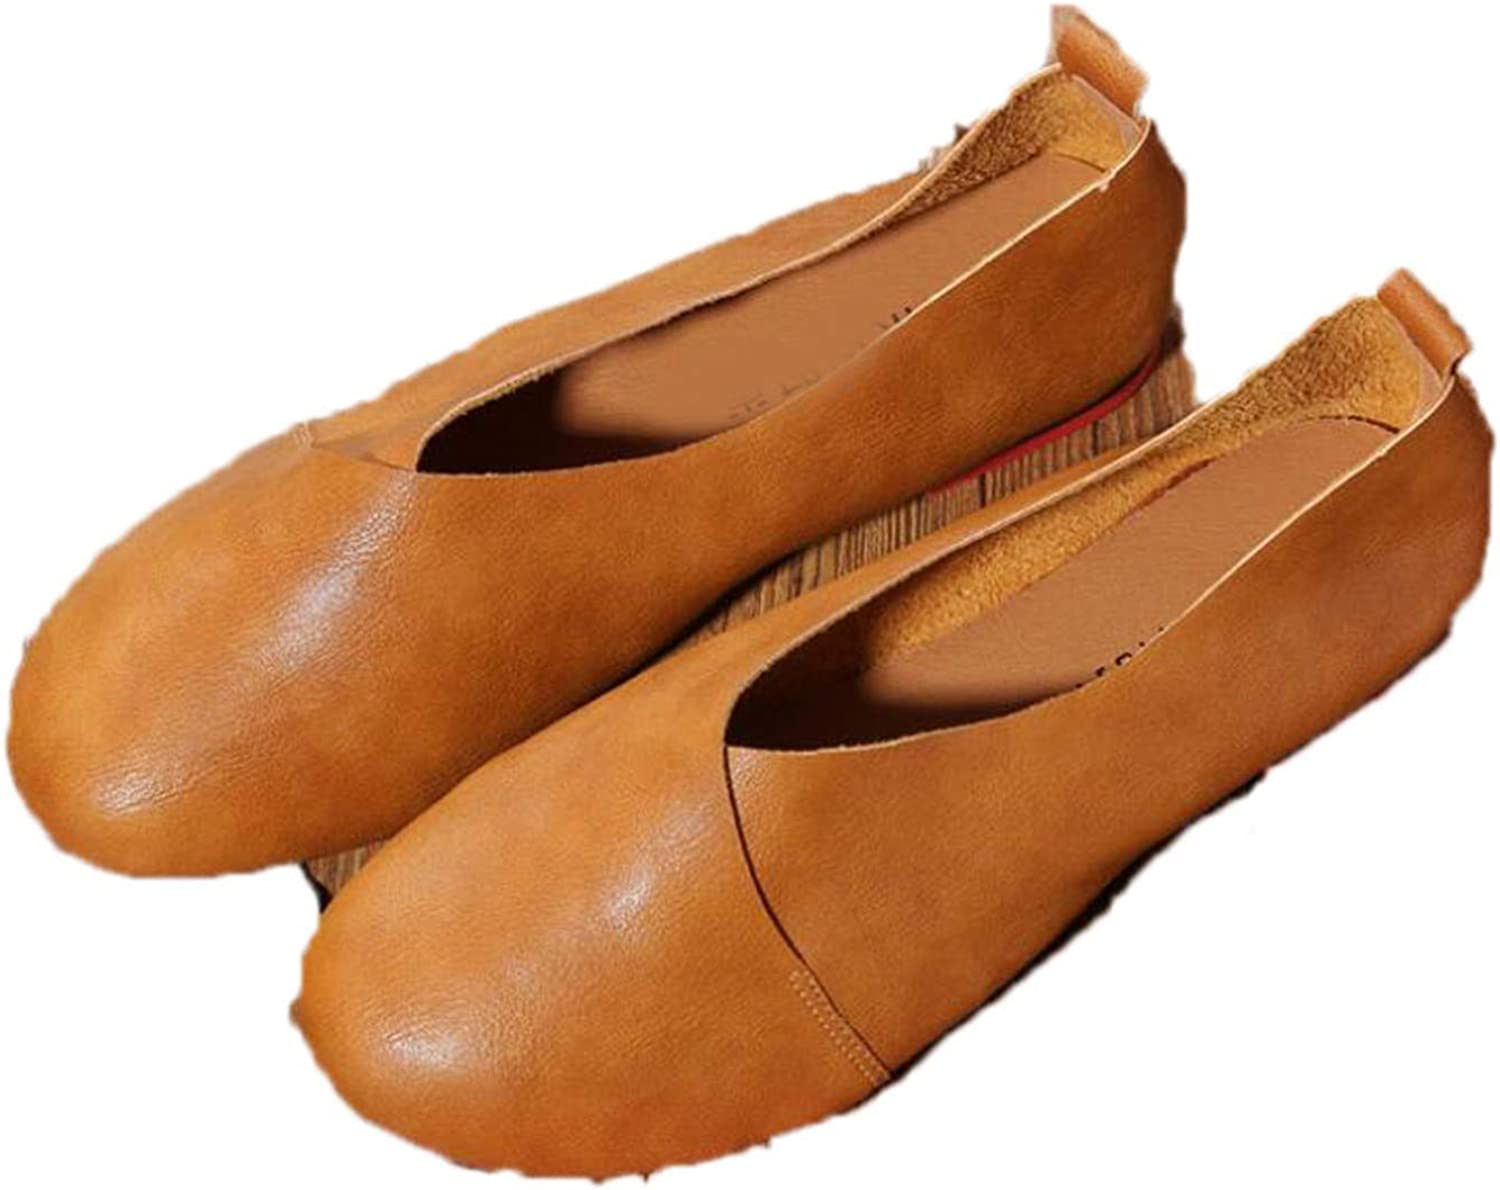 Light Plus Size Genuine Leather Flat shoes Woman Handmade Leather Loafers Flexible Spring Casual shoes Woman Fl